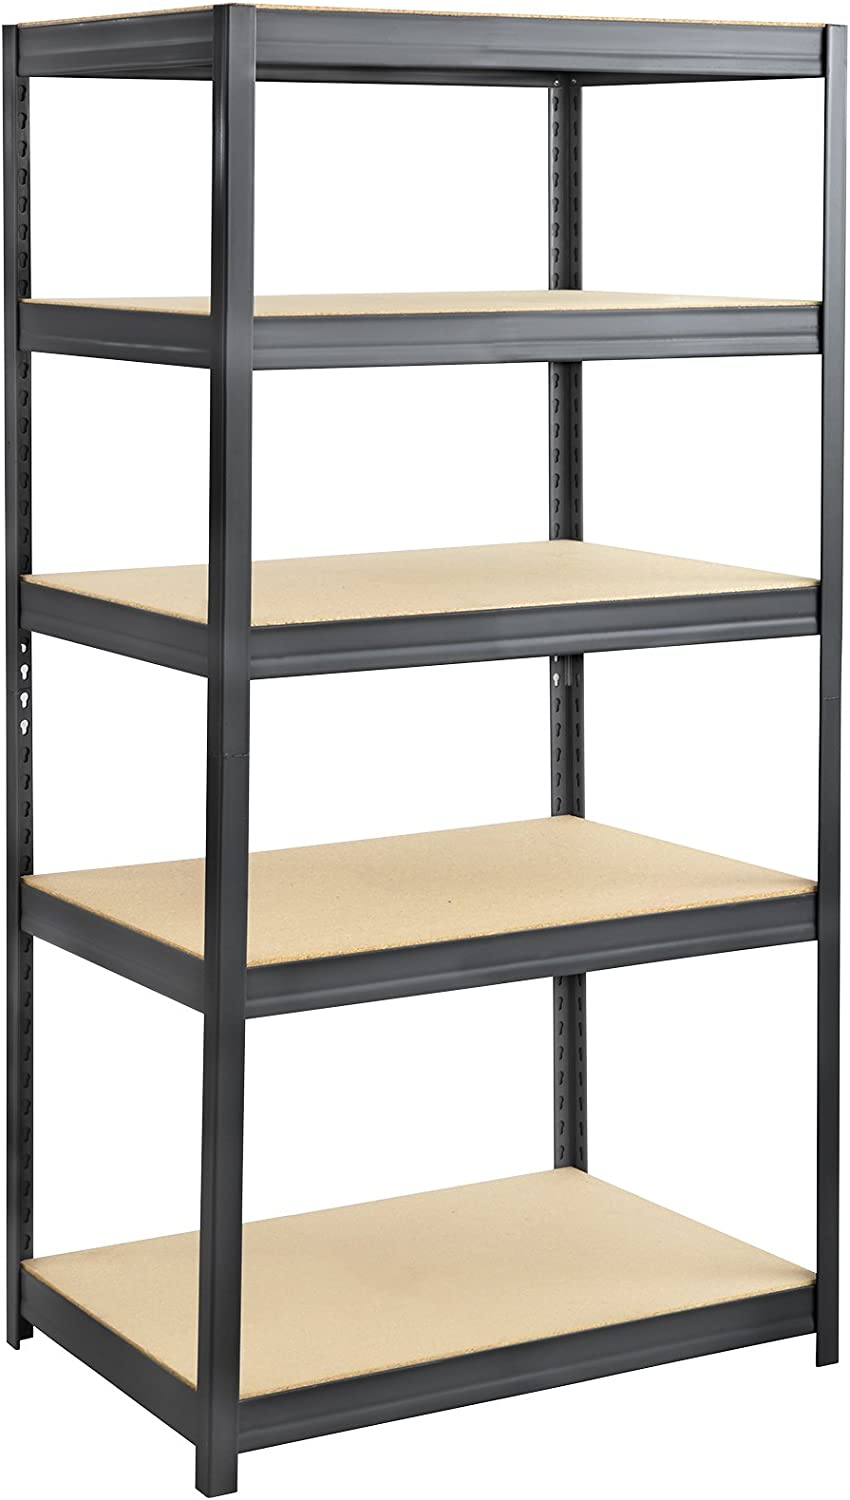 "Safco Products Boltless Steel and Particleboard Shelving 36""W x 24""D x 72""H with 5 Shelves, Black"